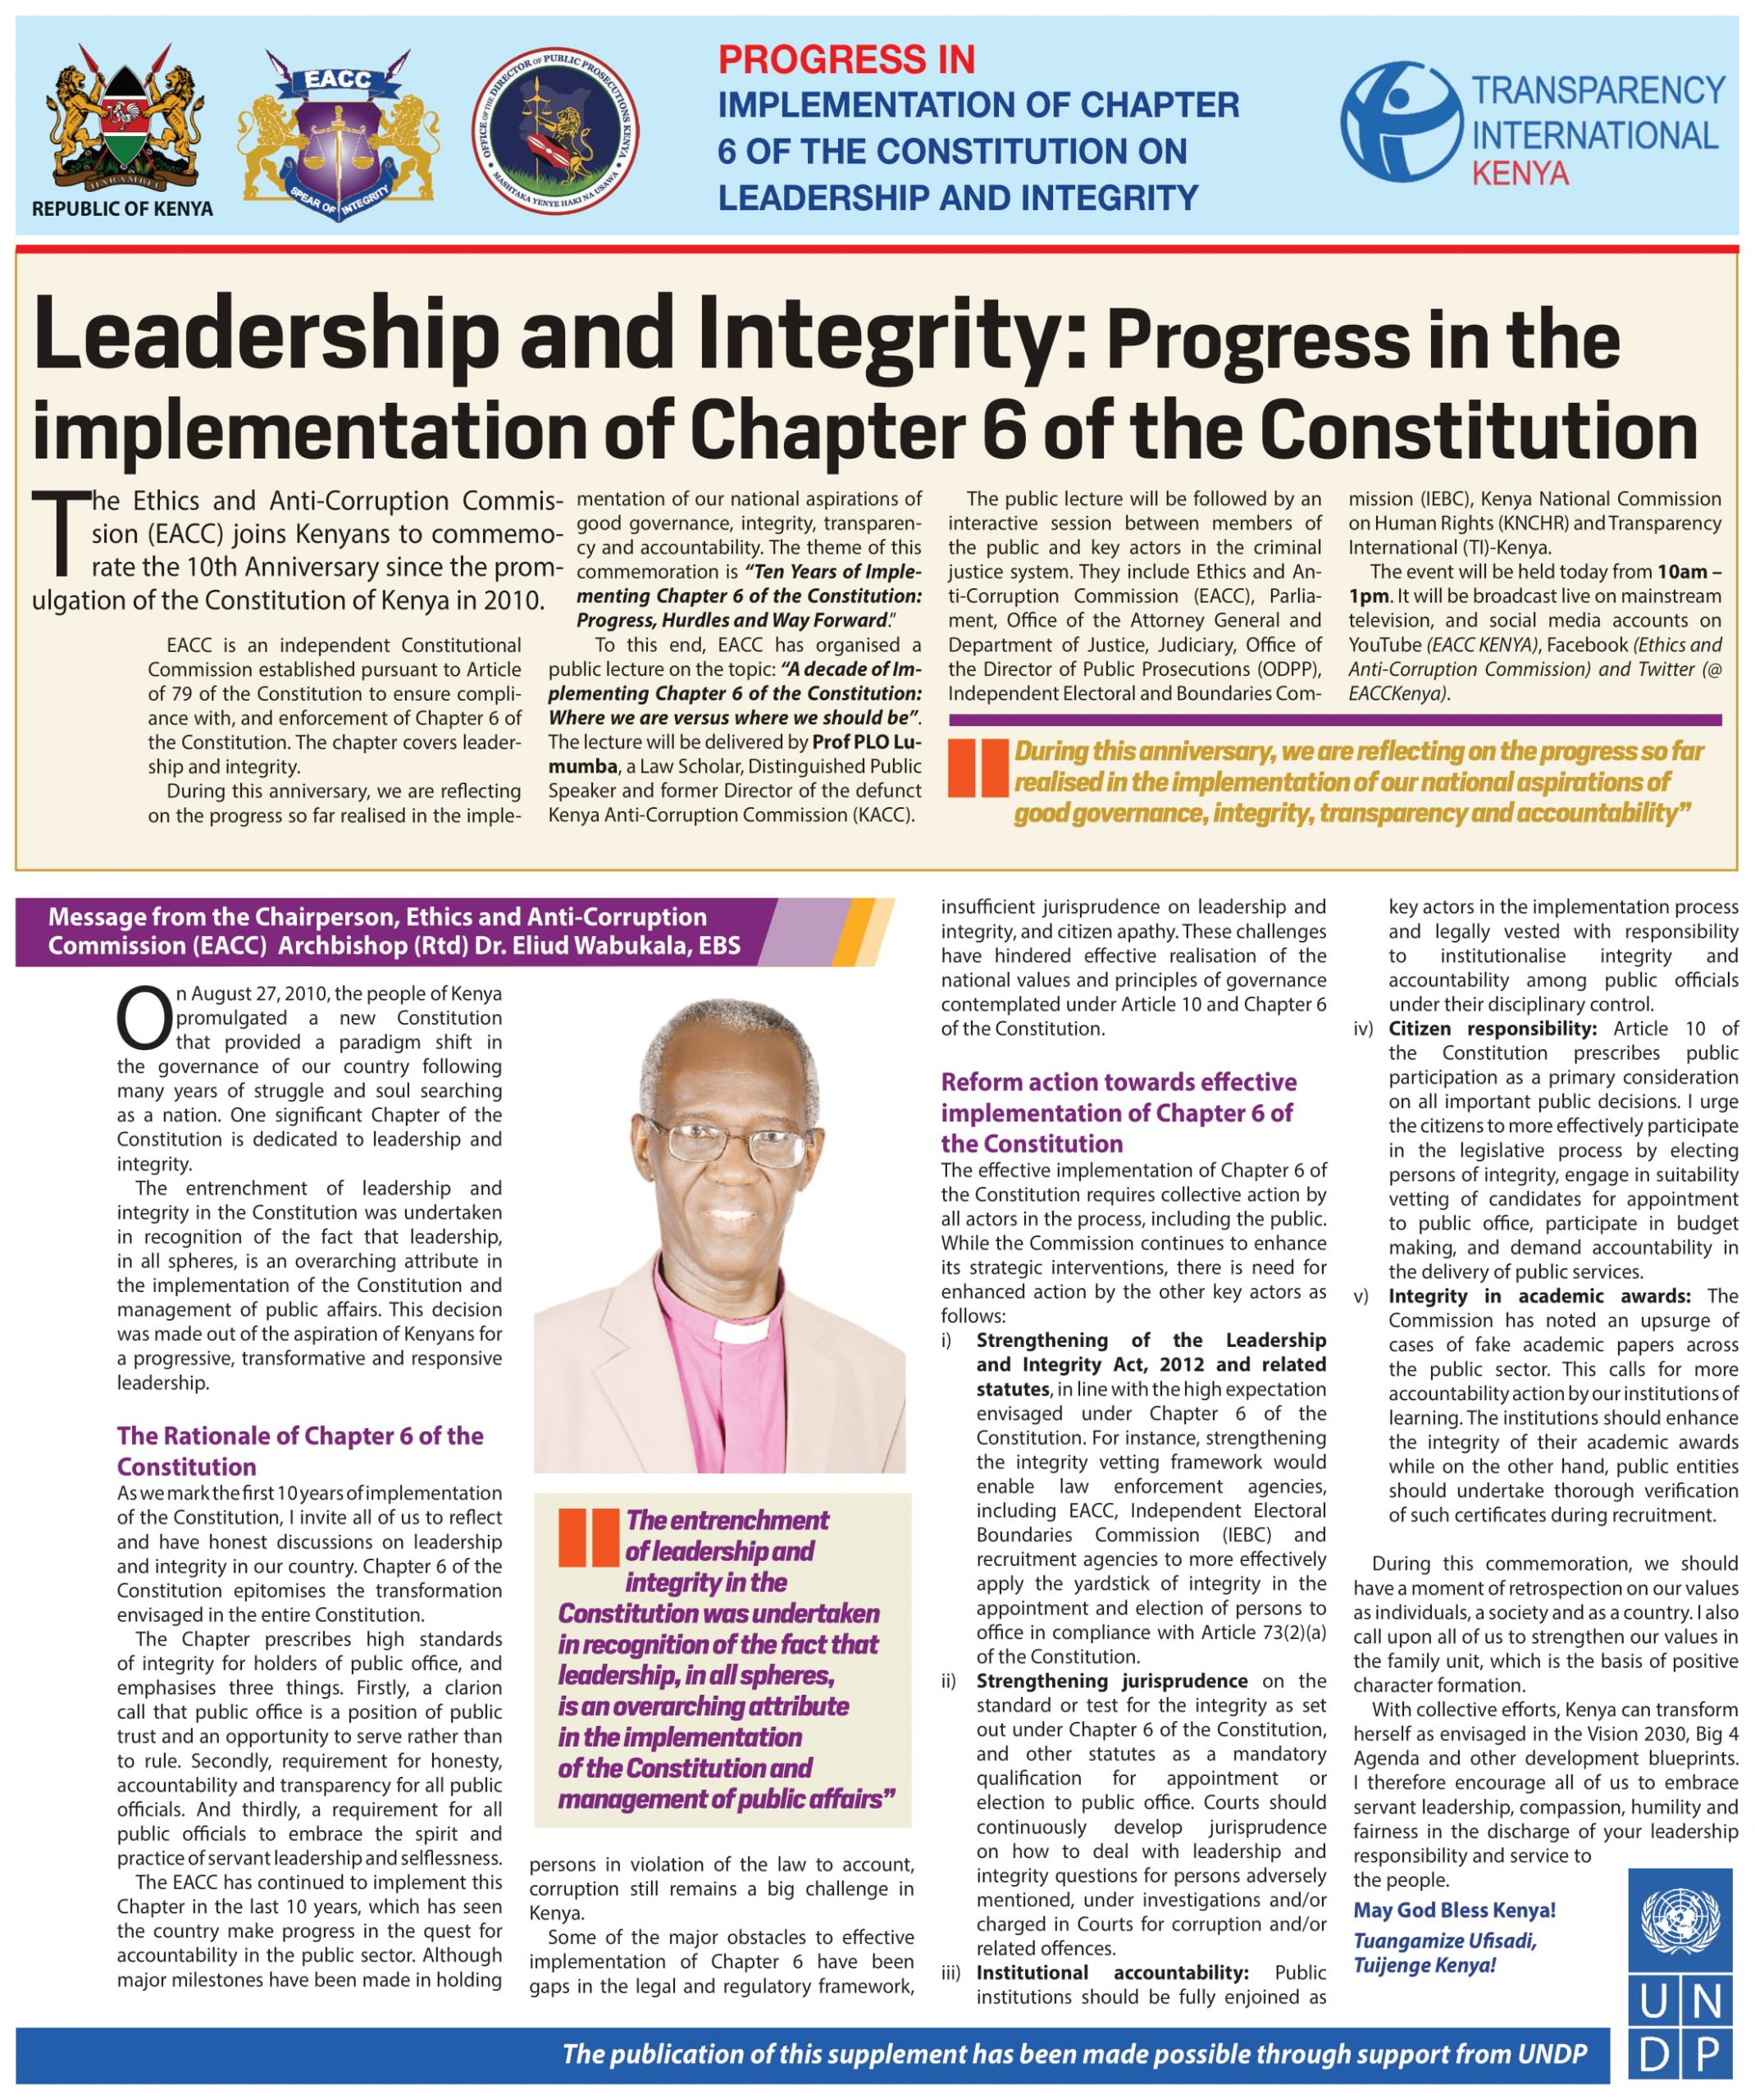 Newspaper Supplement: Progress in Implementation of Chapter 6 of the Constitution on Leadership and Integrity